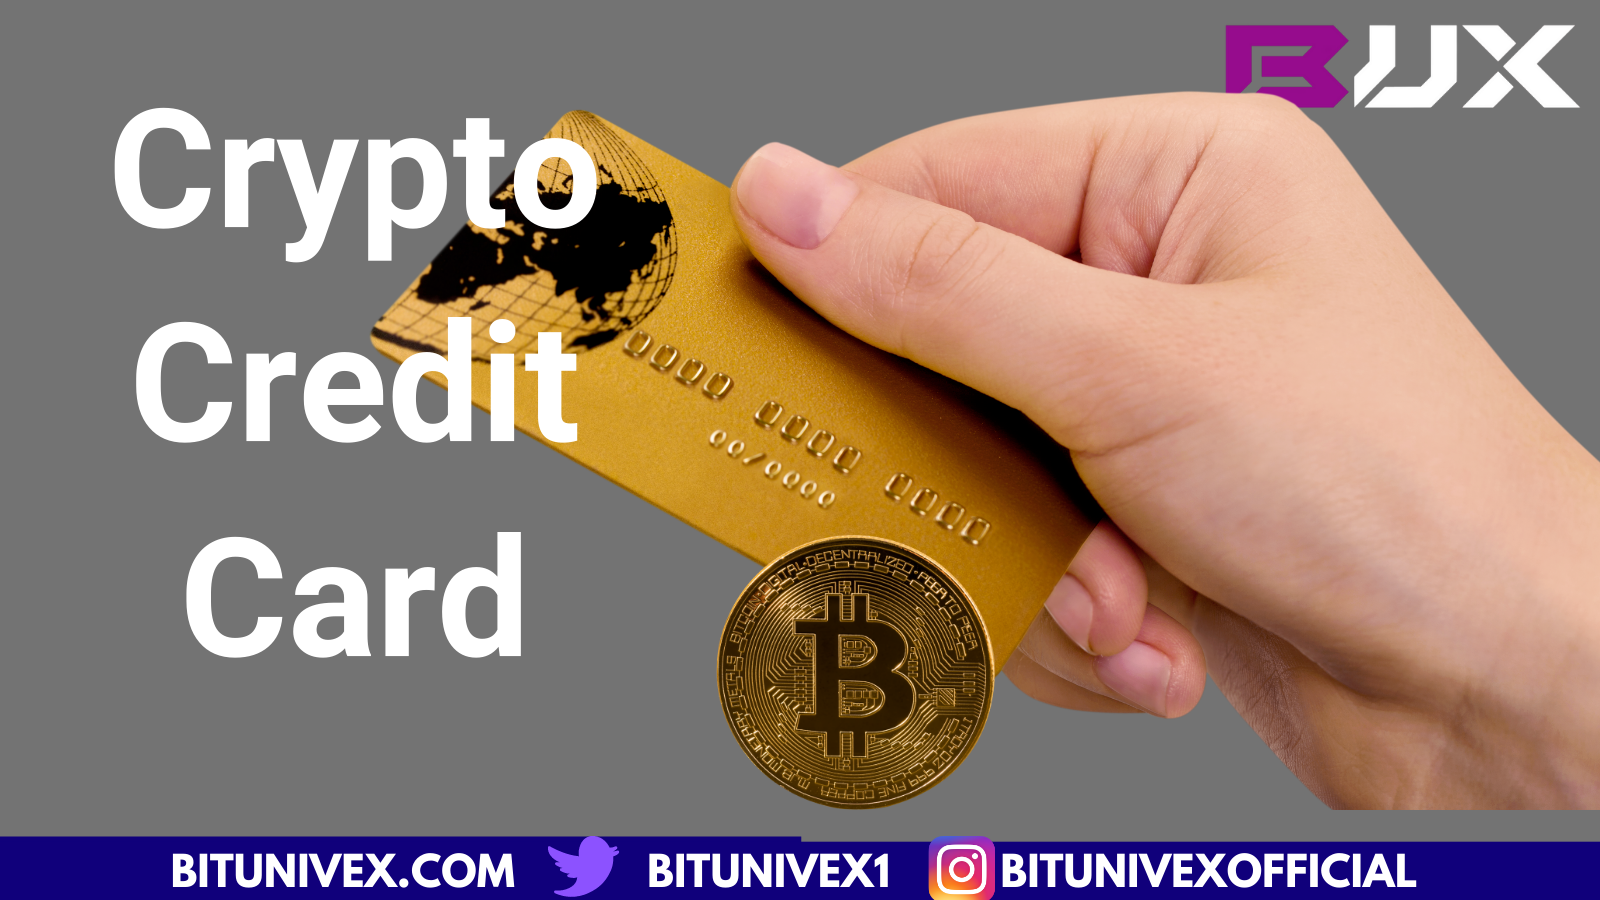 Bitunivex Exchange Credit Card for crypto